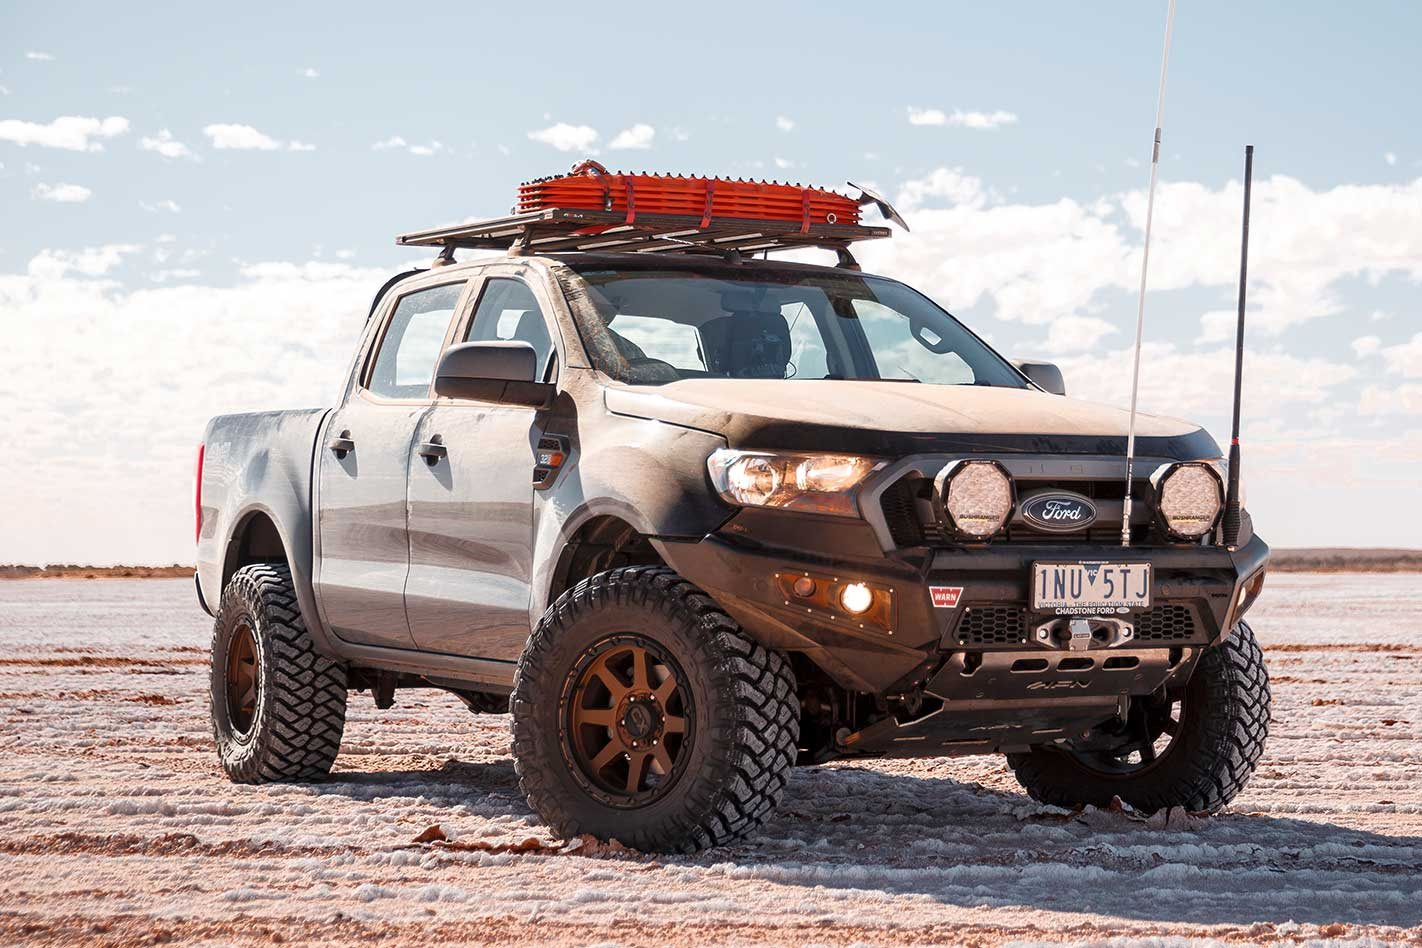 2018 Ford Ranger project rig long-term review